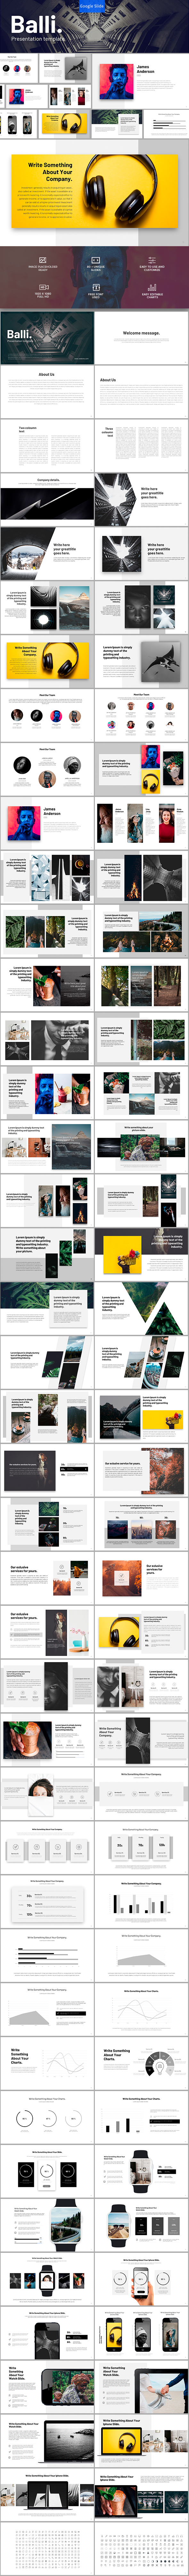 GraphicRiver Balli Google Slides 21128391